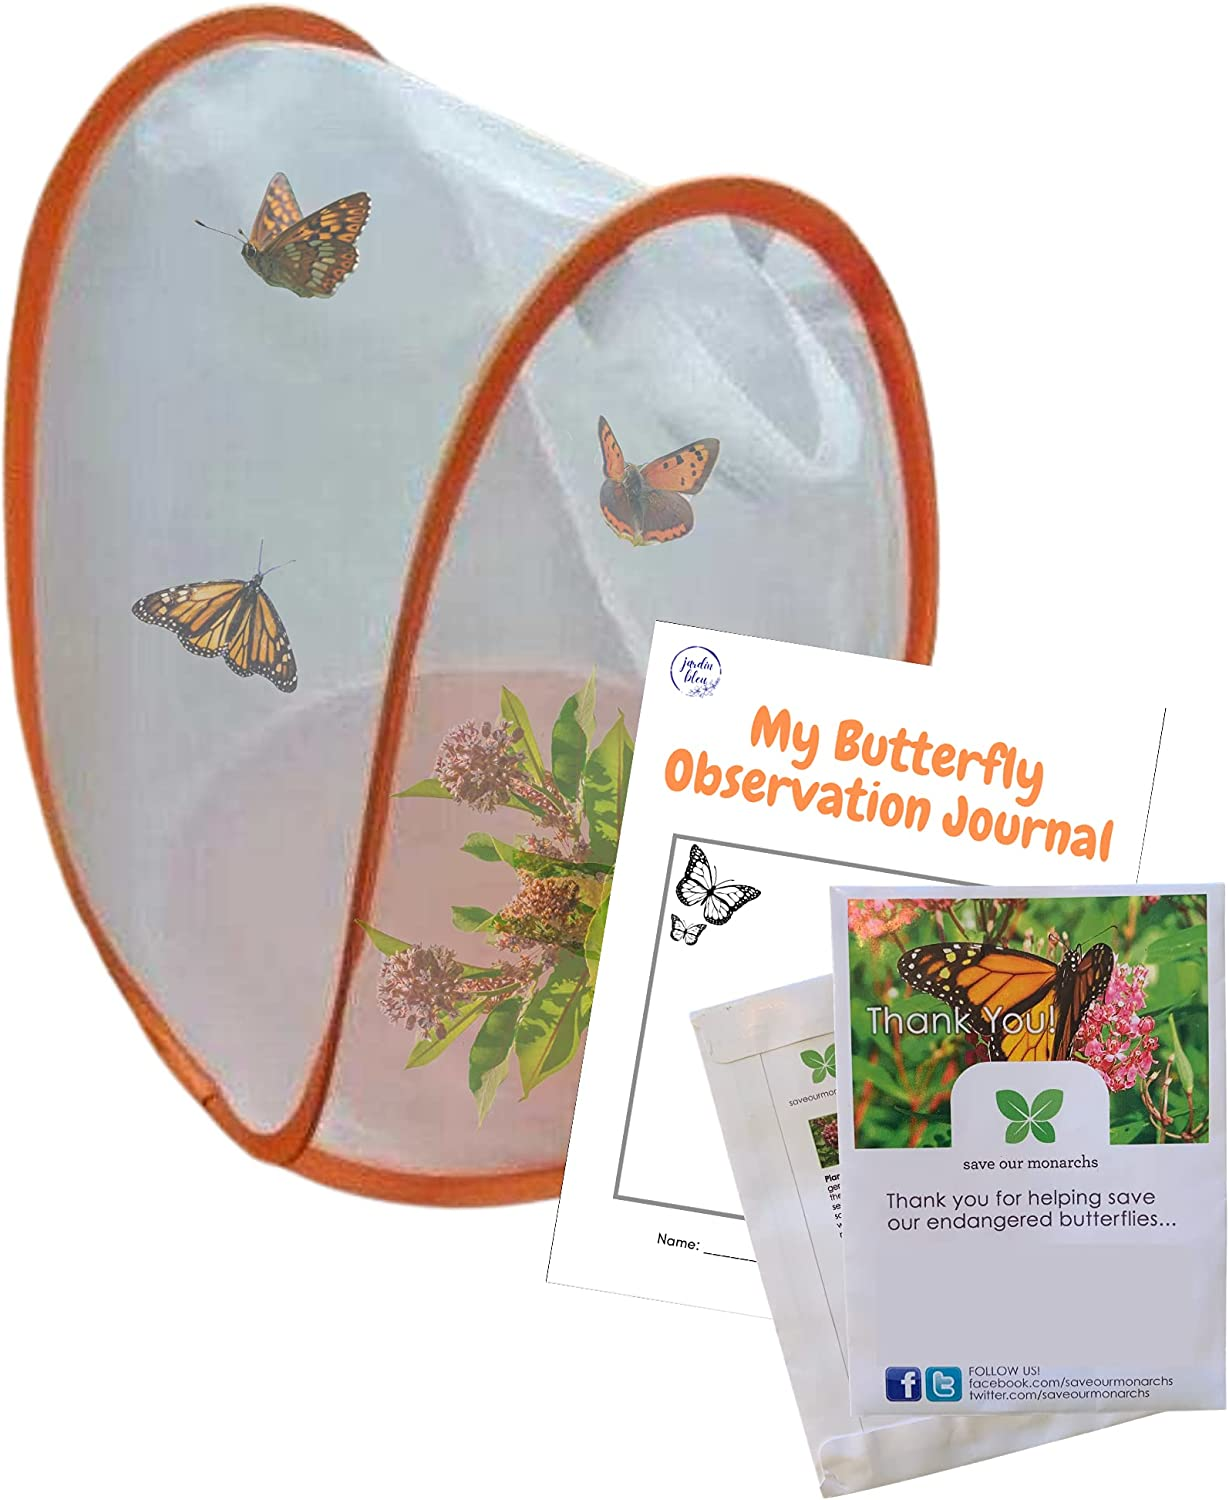 Butterfly Garden Kit | Butterfly House with Common Milkweed Seeds for Monarch Butterflies (NO Voucher)| Monarch Butterfly Kit| Butterfly Habitat